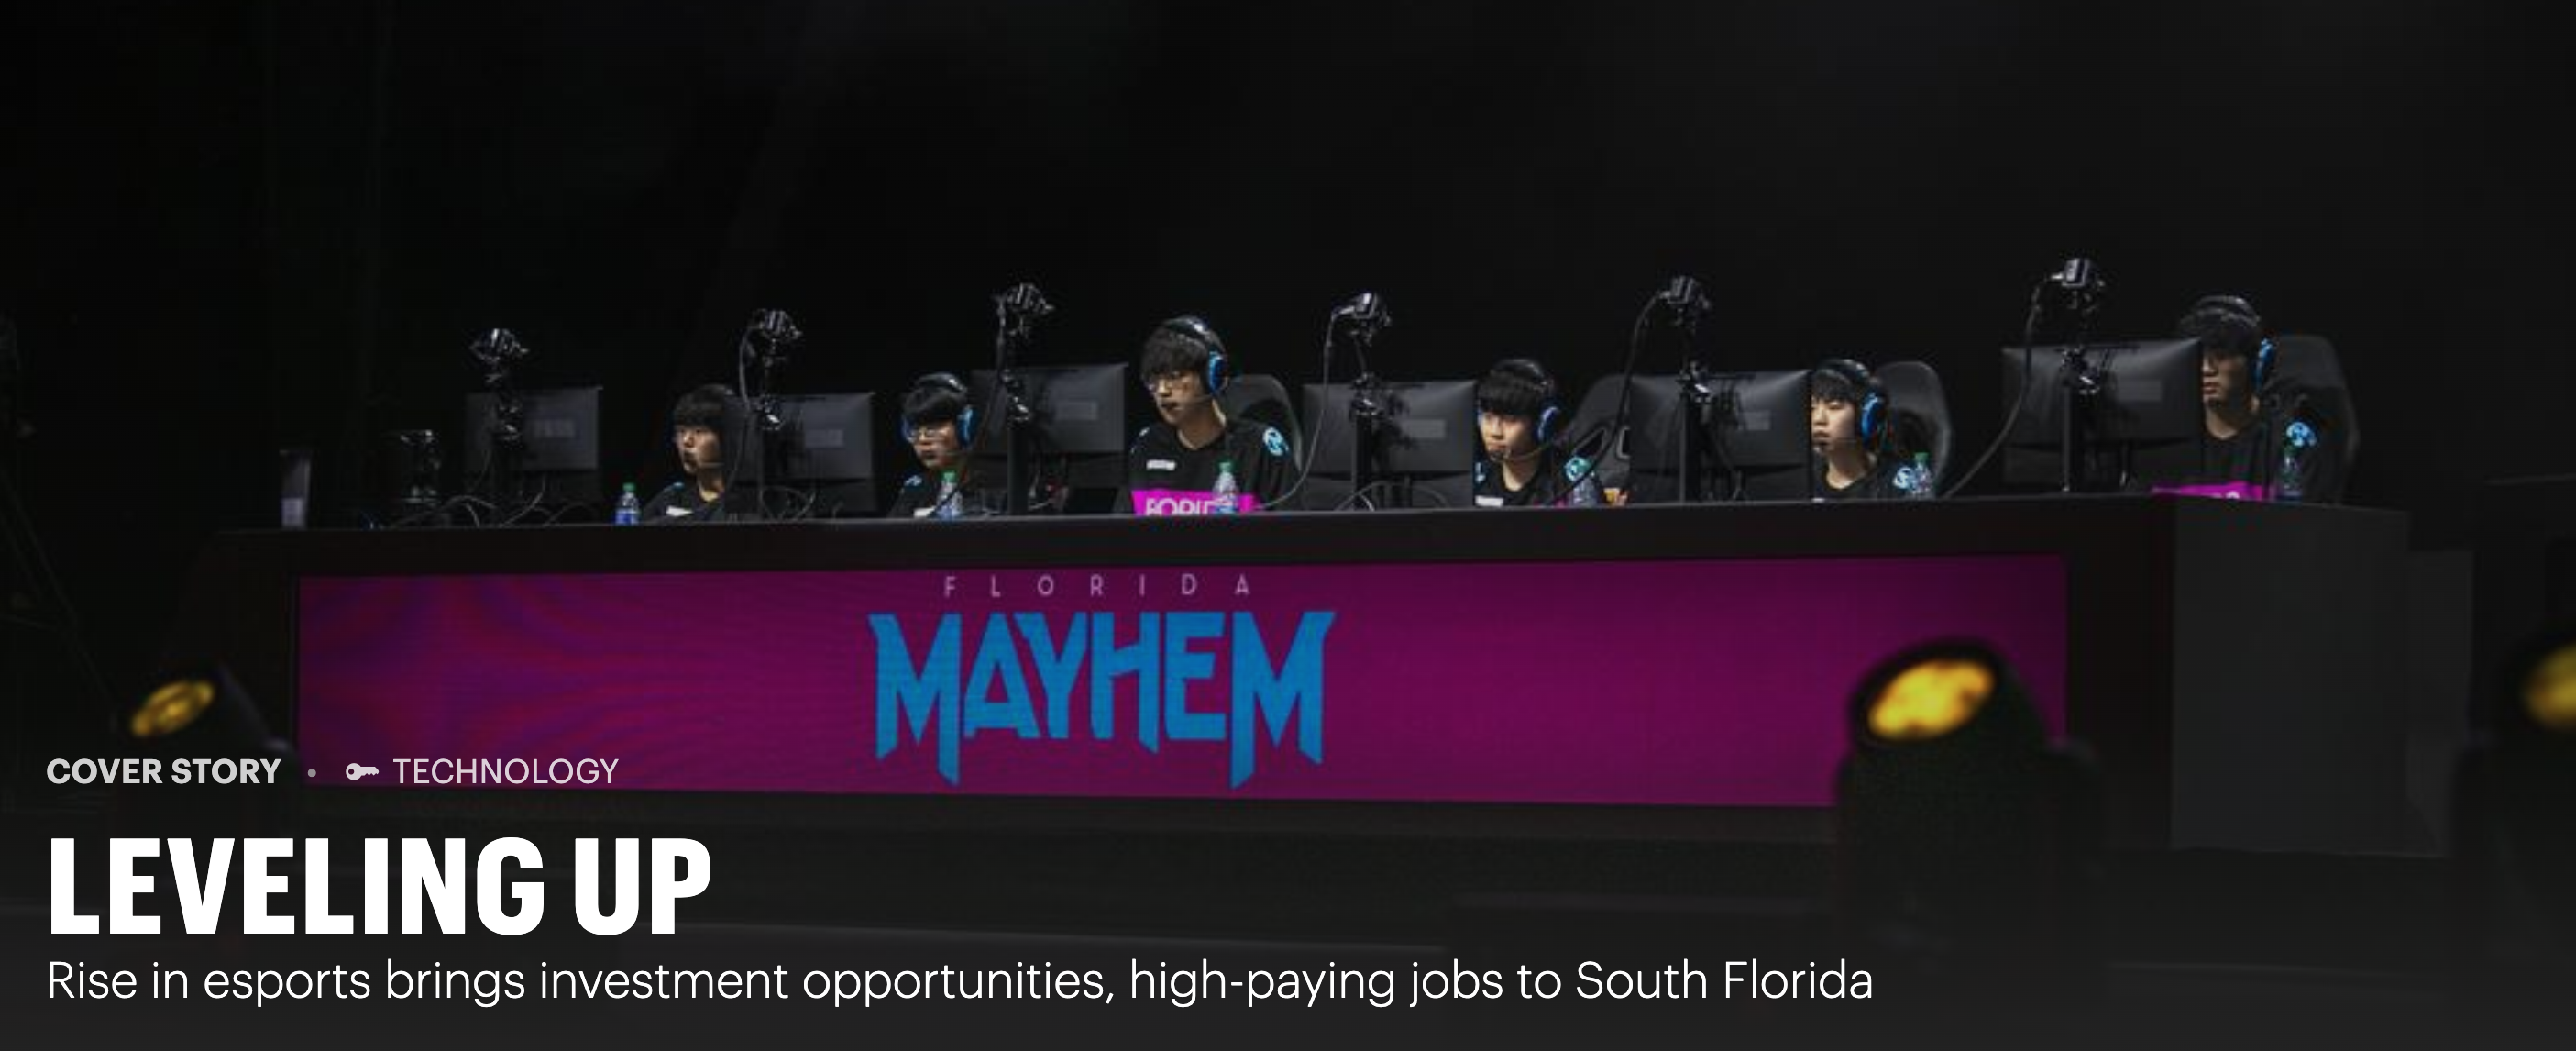 Cover Story: Rise in esports brings investment opportunities, high-paying jobs to South Florida